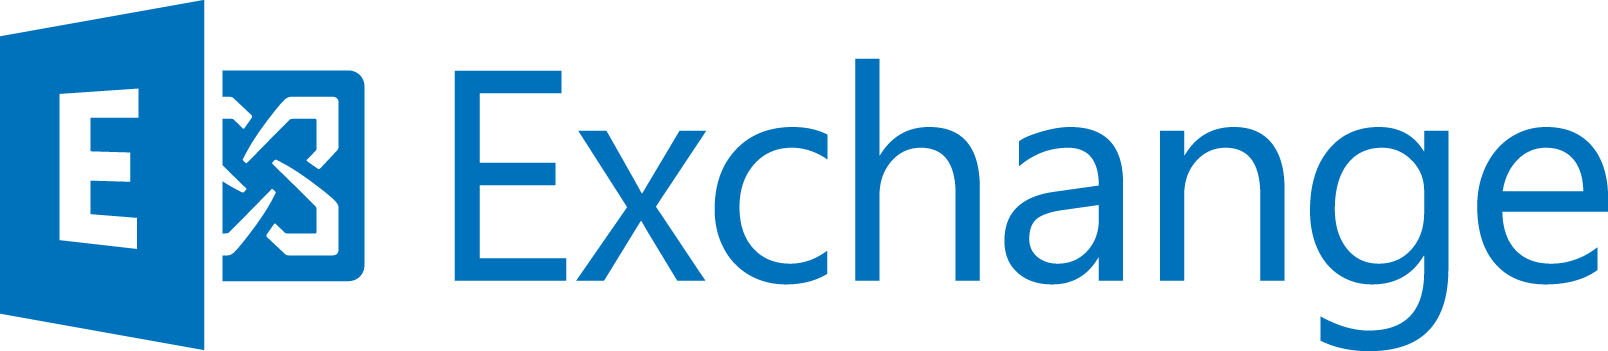 Microsoft Exchange Logo PNG